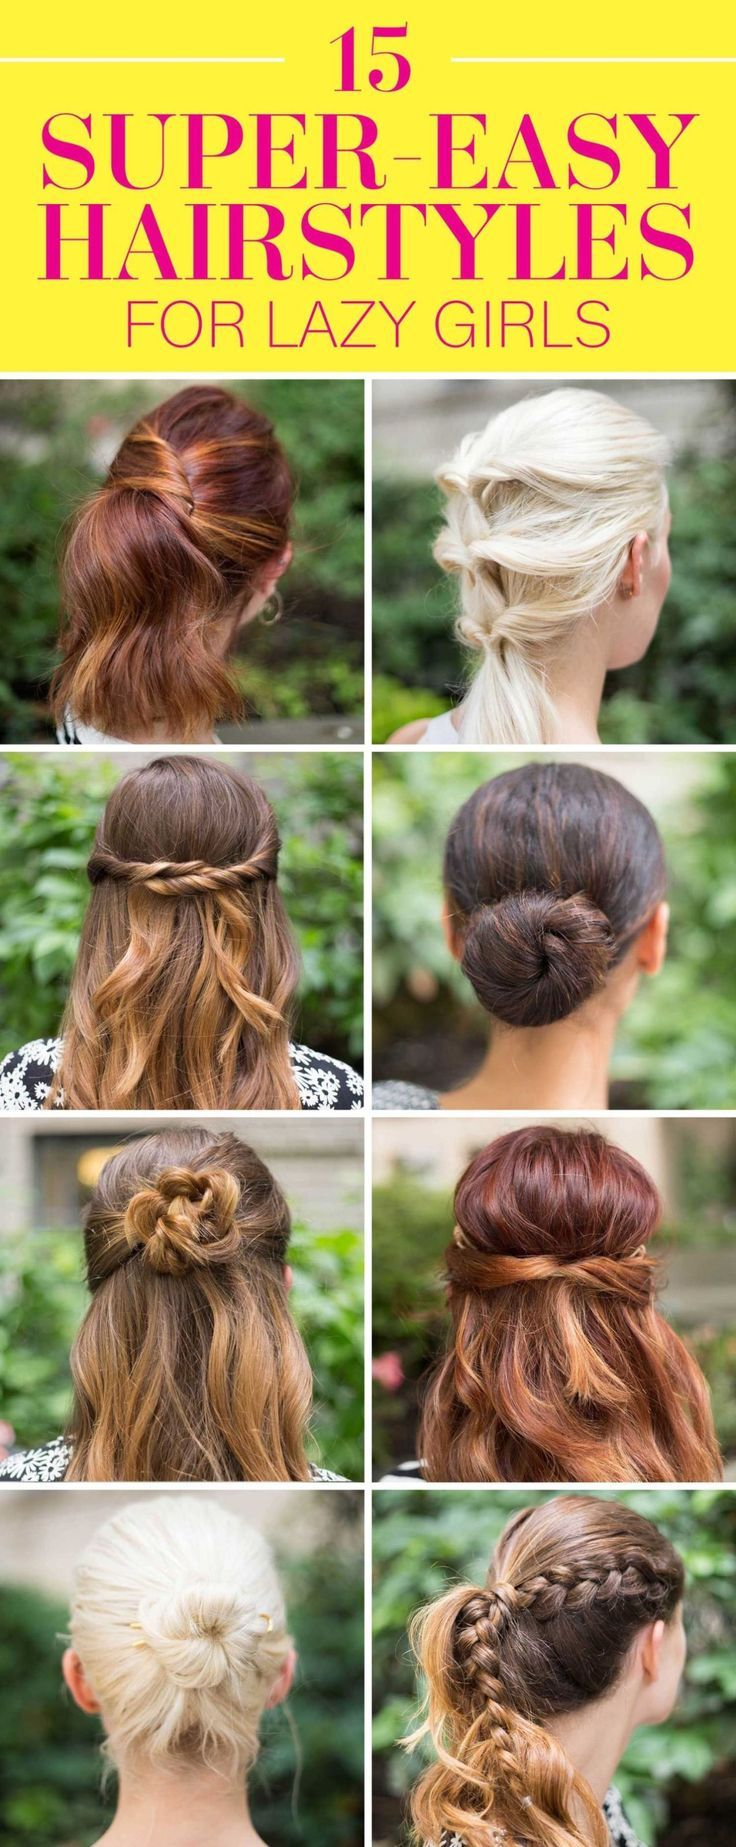 15 super light hairstyles for lazy girls who can not even # #mal #faule #styles #light #madchen